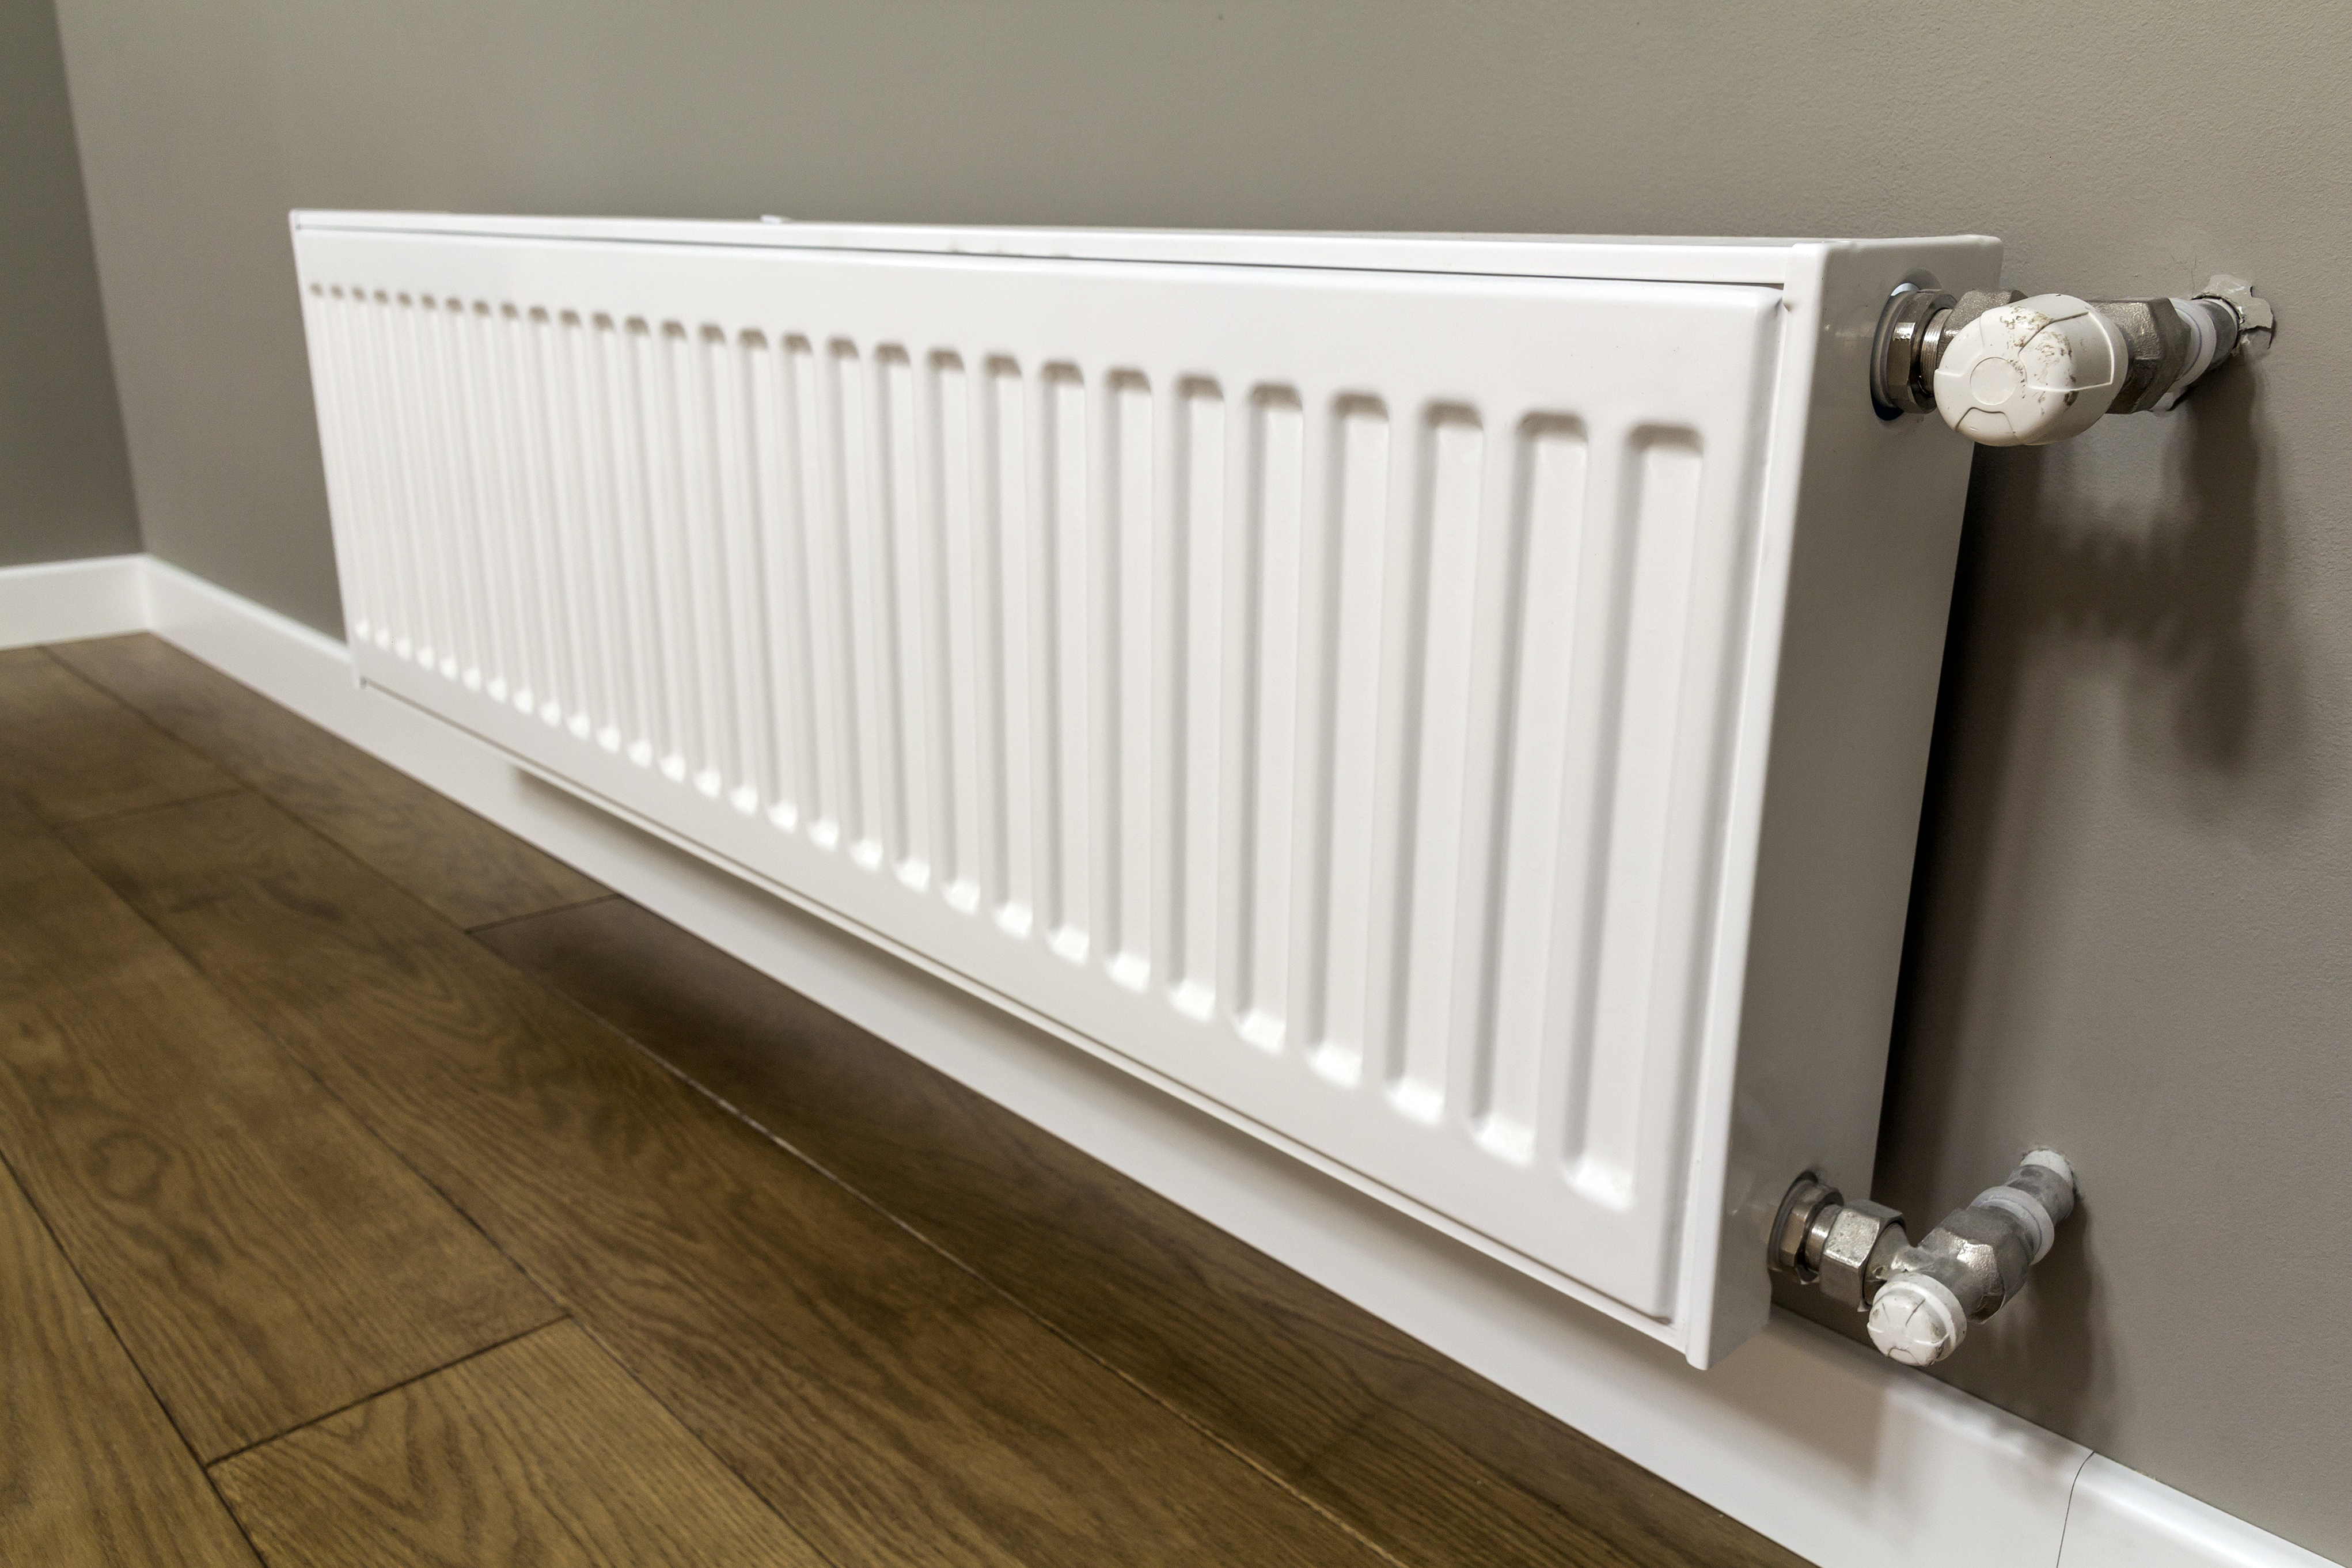 Correct Color of Flame on Gas Heaters | Home Guides | SF Gate